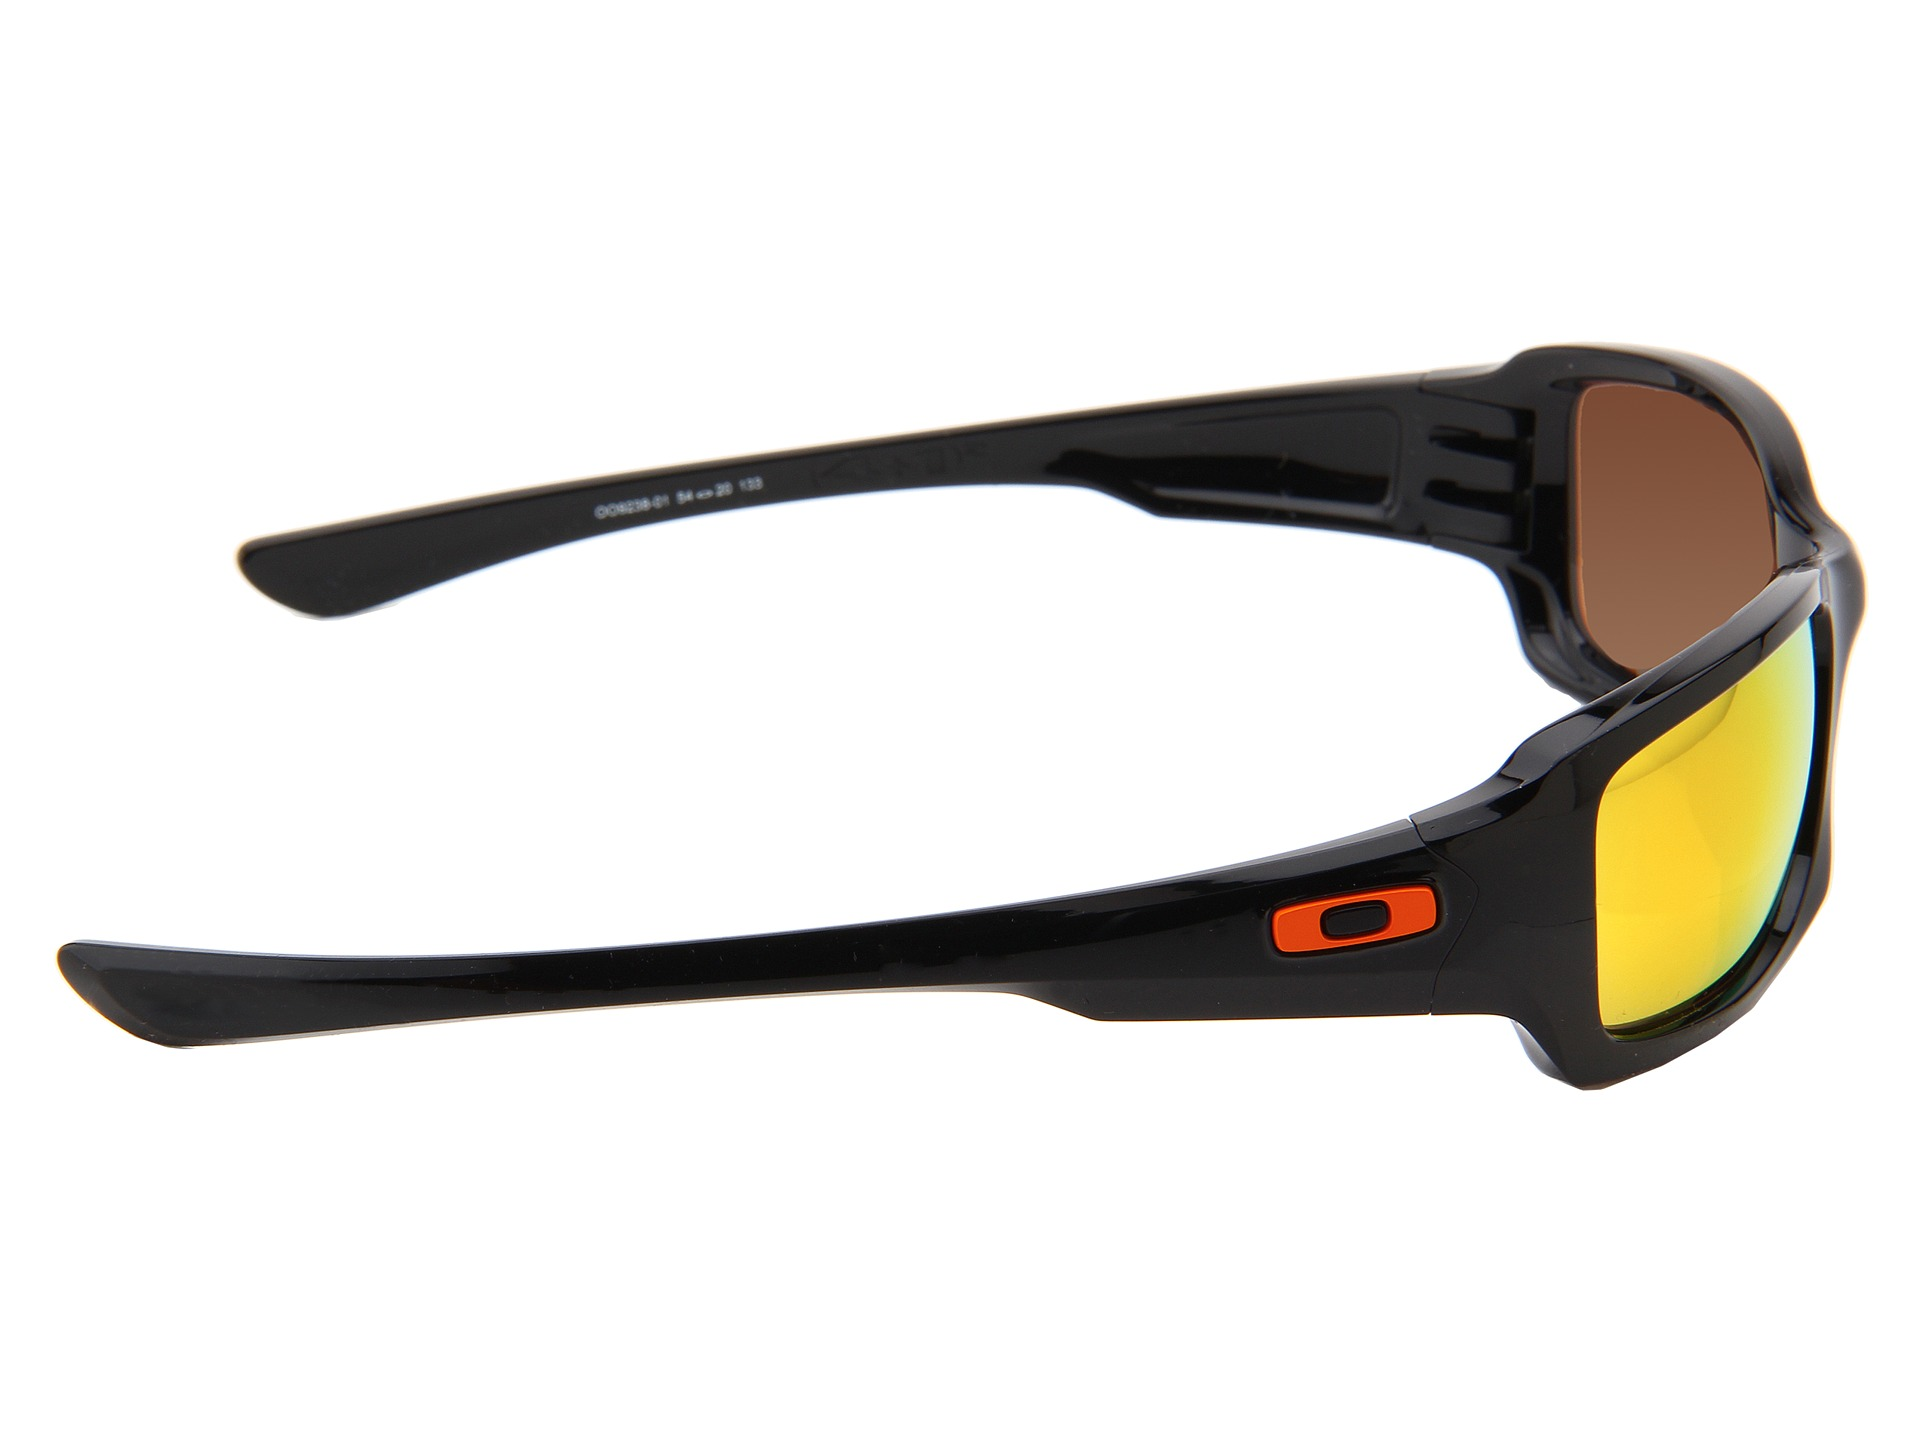 What Oakley Sunglasses Are Best For Small Faces? | Sunglasses and ...